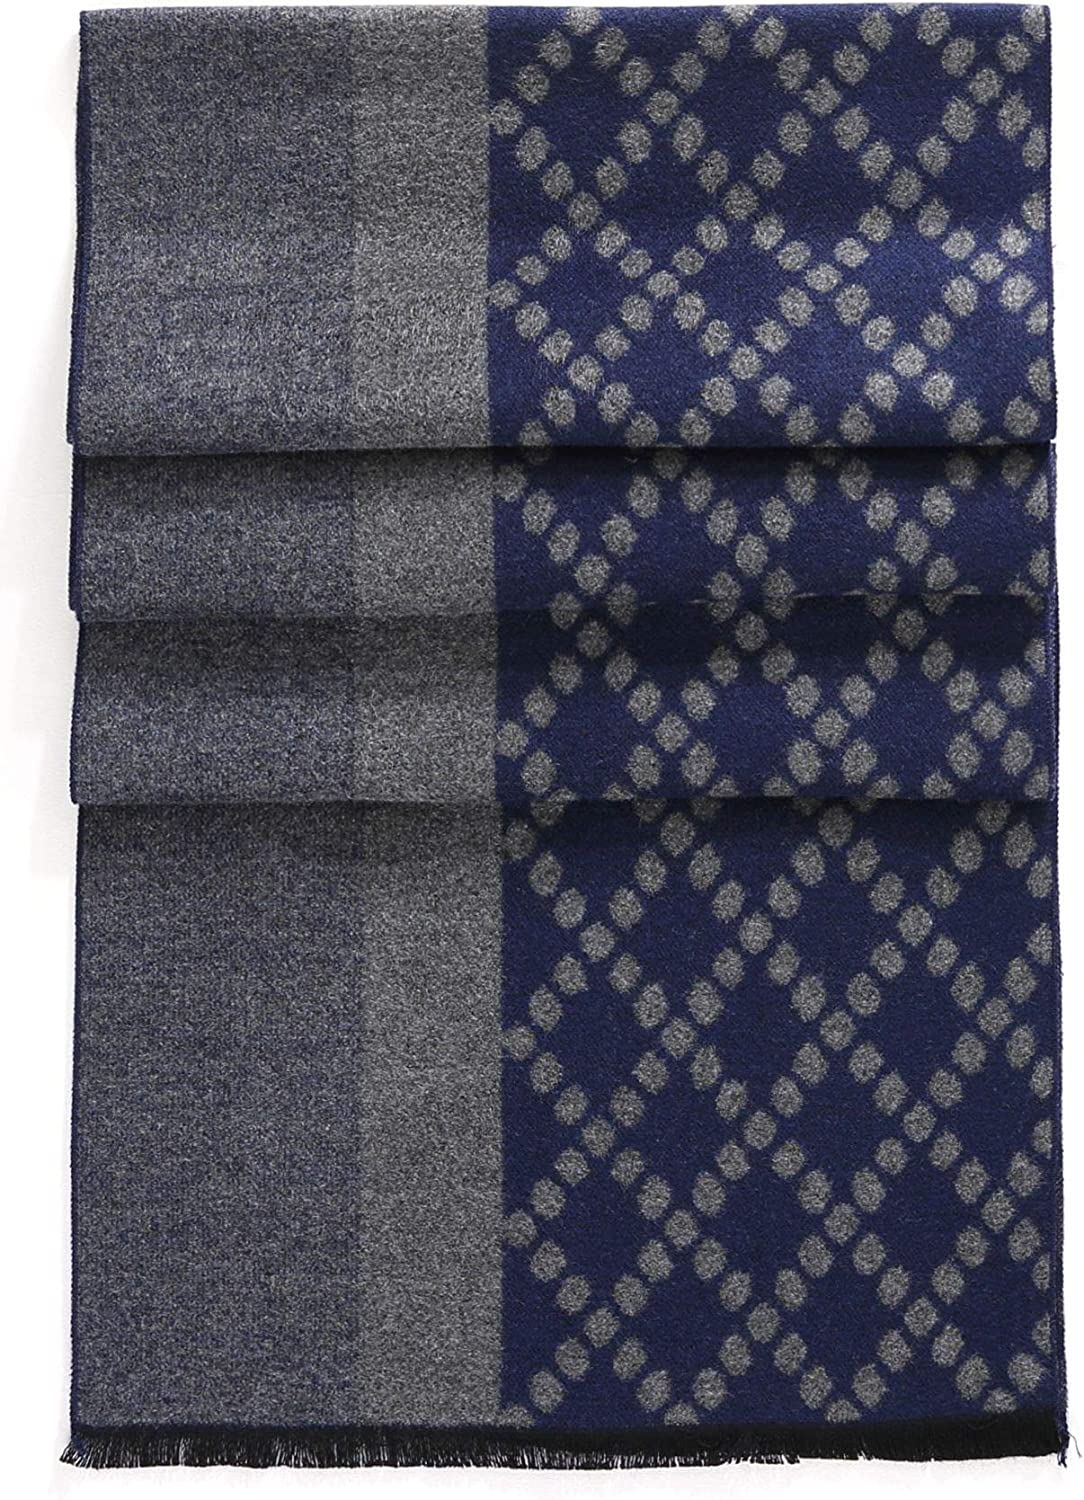 Cotton Scarves for Winter FULLRON Men Cashmere Scarf Silky Warm